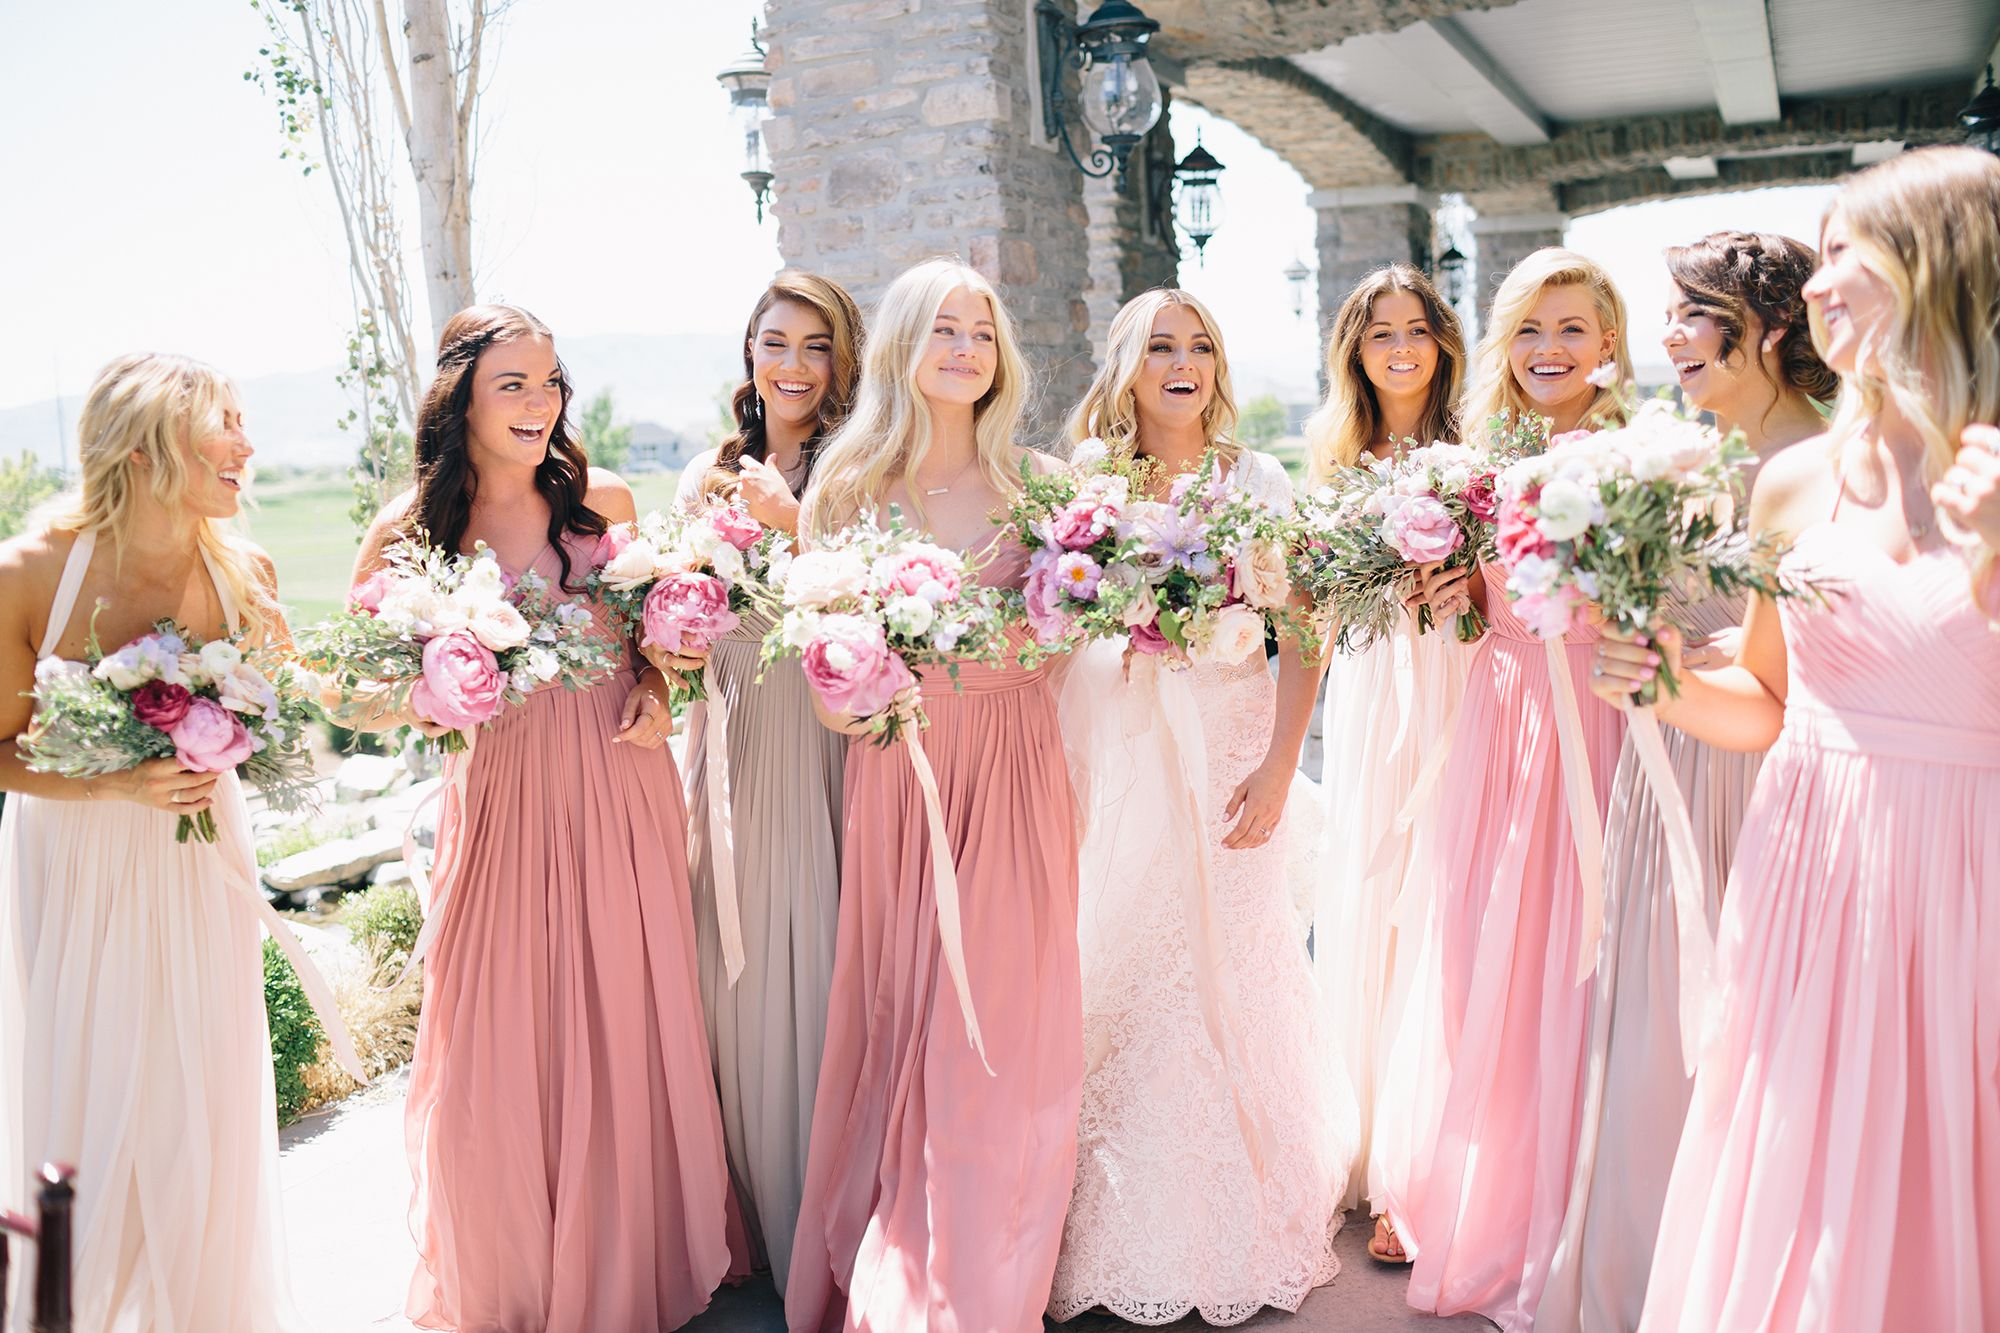 Lindsay Arnold Wedding | Dancing With the Stars | Bridal Party ...